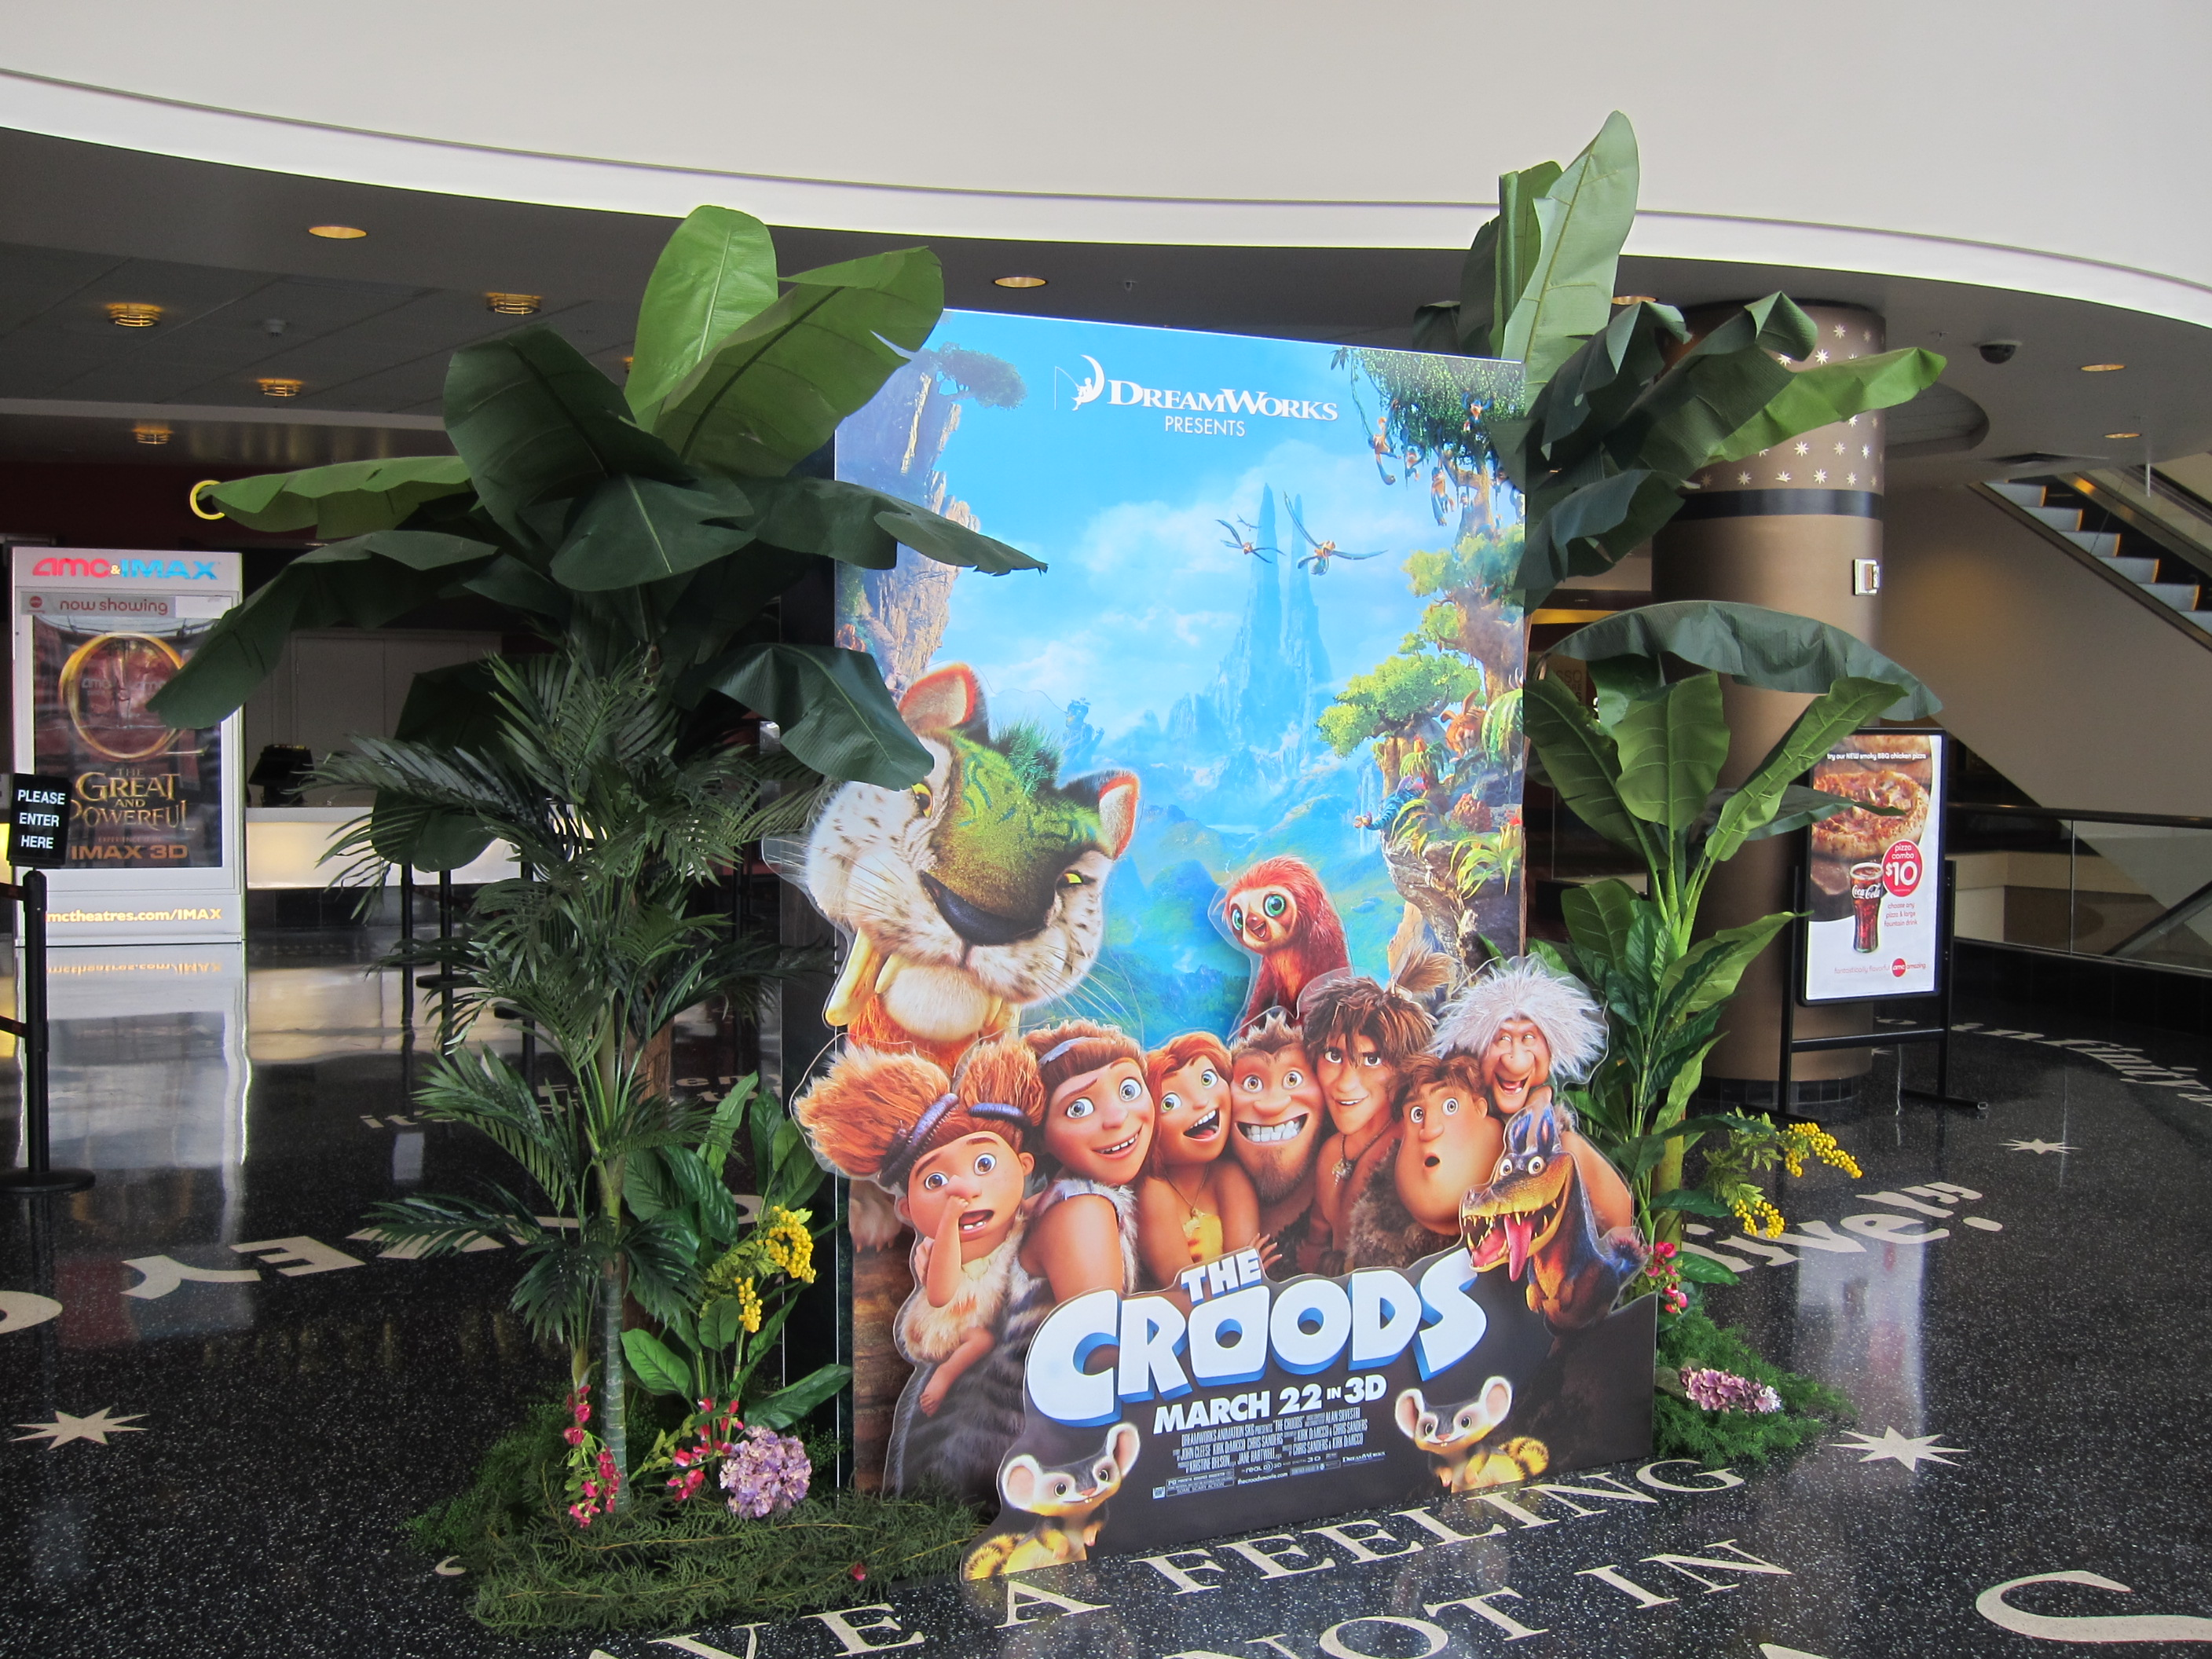 THE CROODS special layered display at the AMC Century City 15.